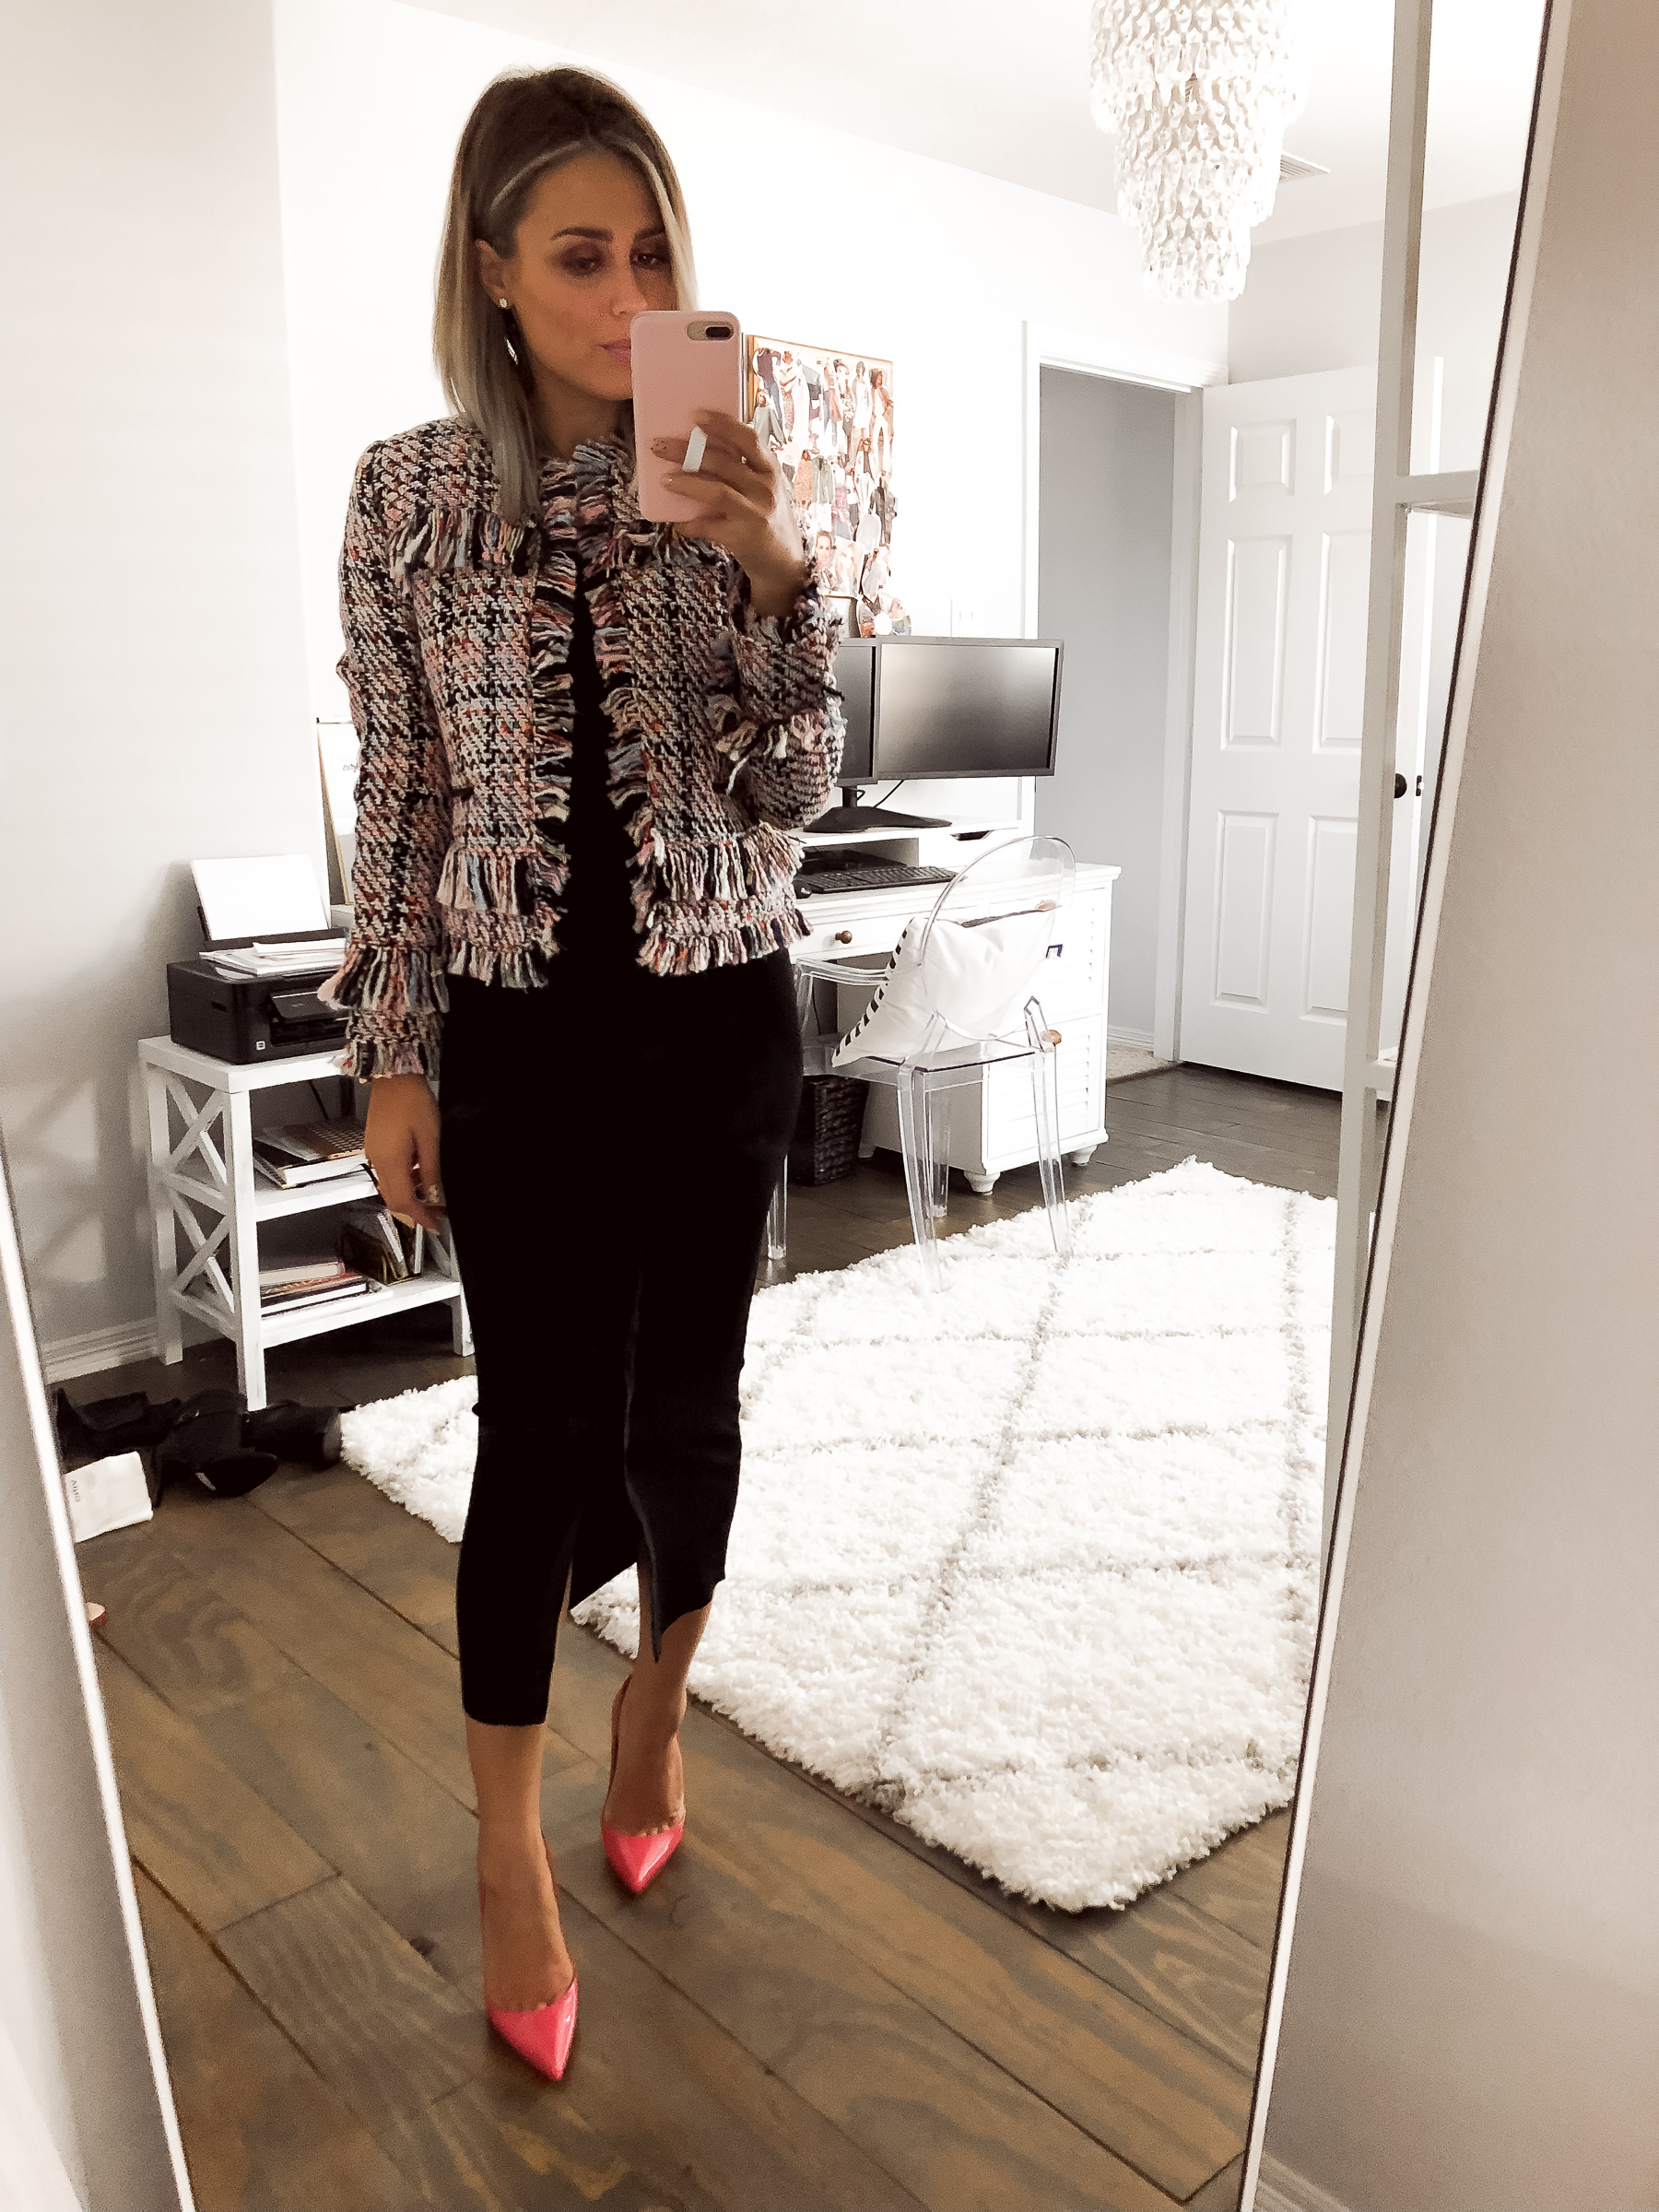 Houston fashion blogger Uptown with Elly Brown shares her 2018 Nordstrom Anniversary sale items and her future fall outfits. Click here for more!